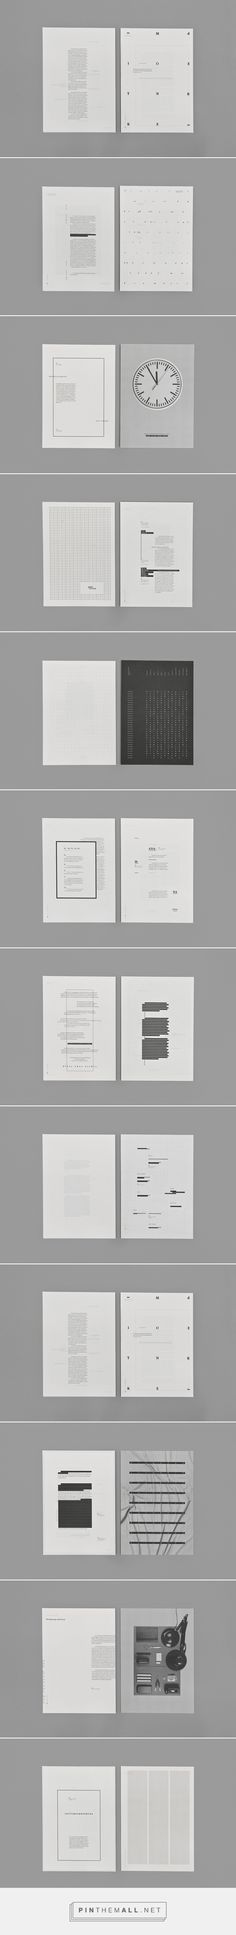 """Bachelor thesis: """"Finding the right moment""""   graphic design. Grafikdesign . design graphique   Design made in Germany: Annabell Ritschel  """